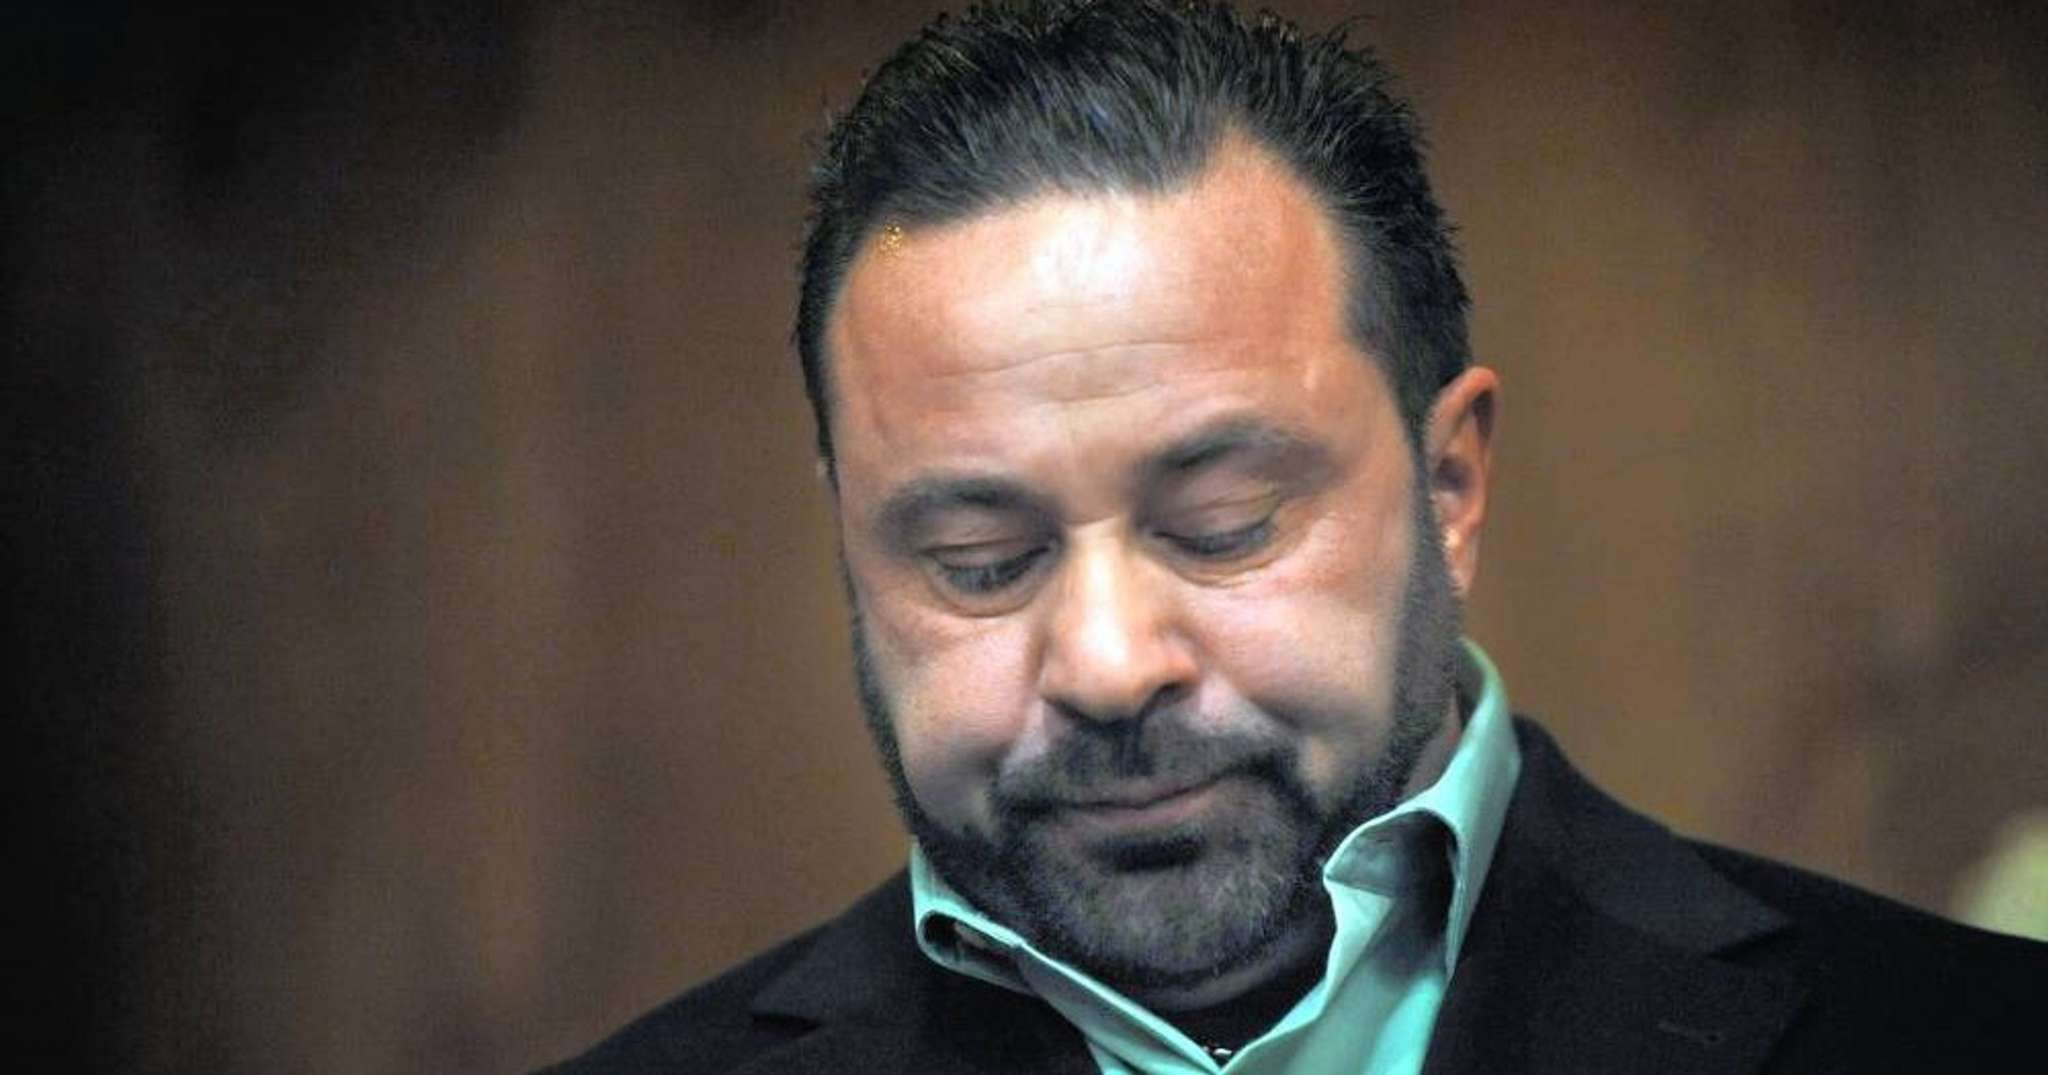 'Real Housewives' Husband Joe Giudice Loses Appeal to Avoid Deportation to Italy